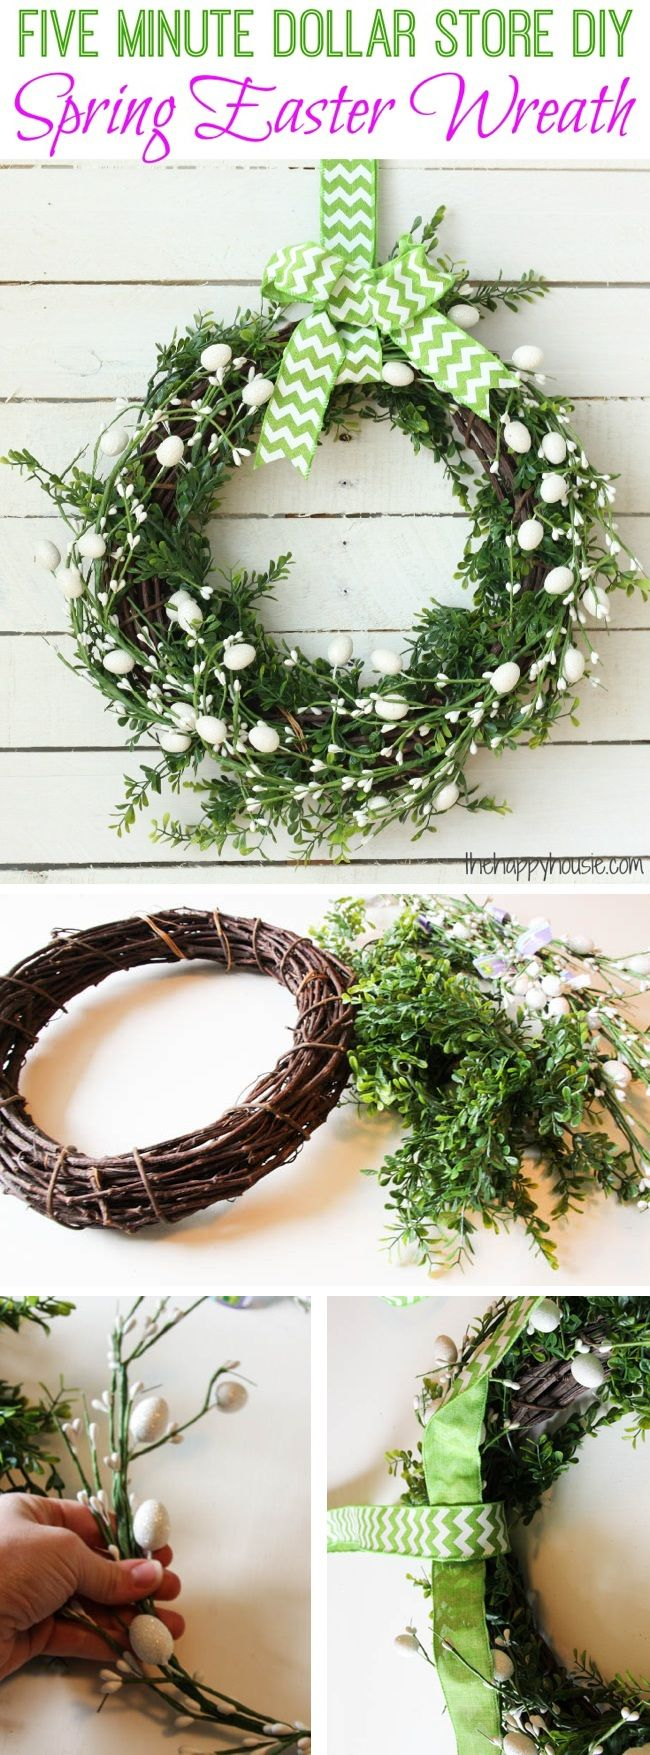 Five Minute Dollar Store DIY Spring Easter Wreath